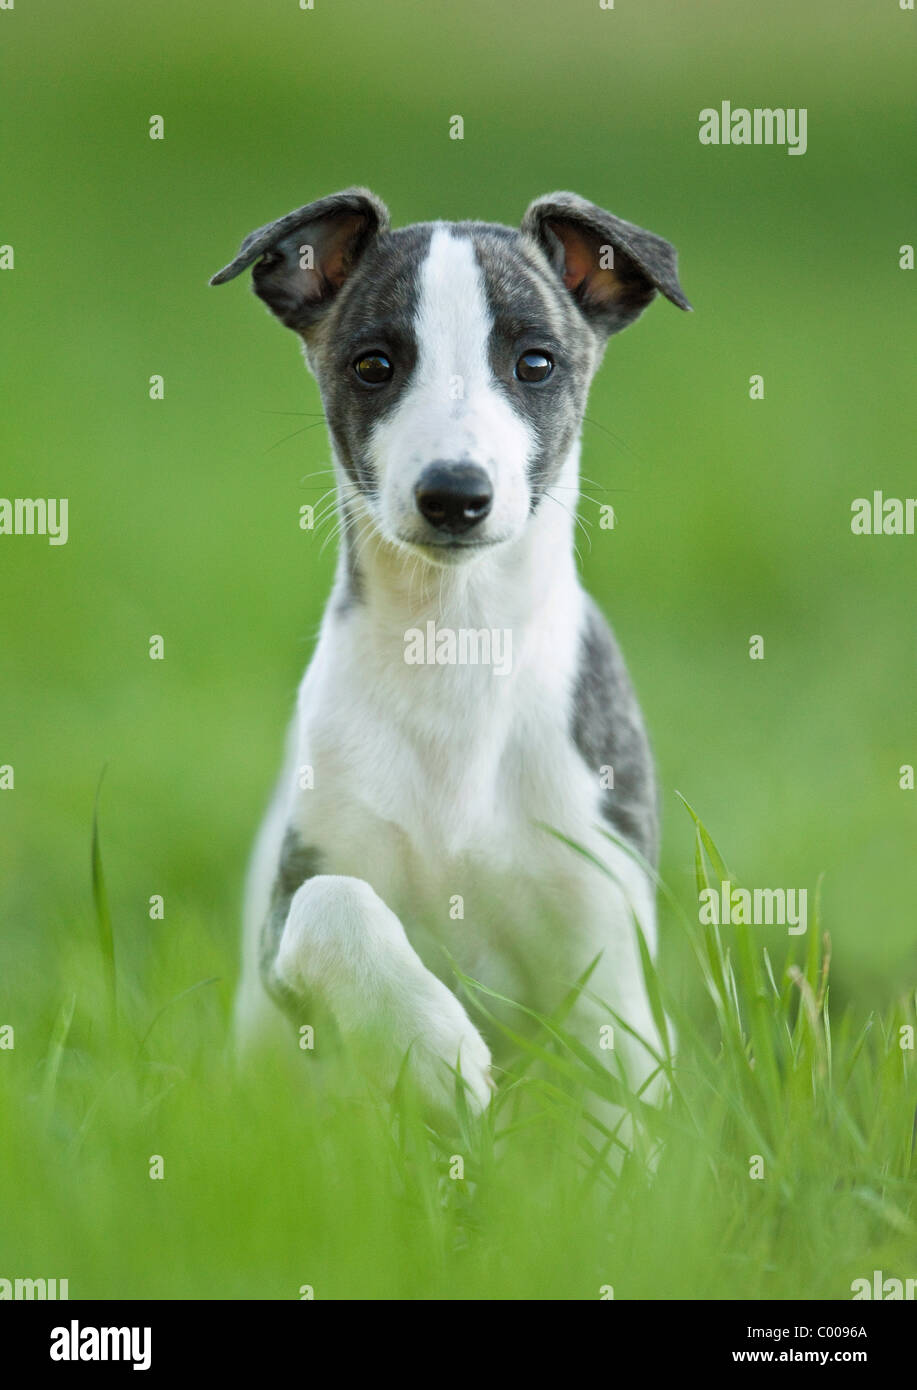 Whippet dog - puppy sitting on meadow Stock Photo